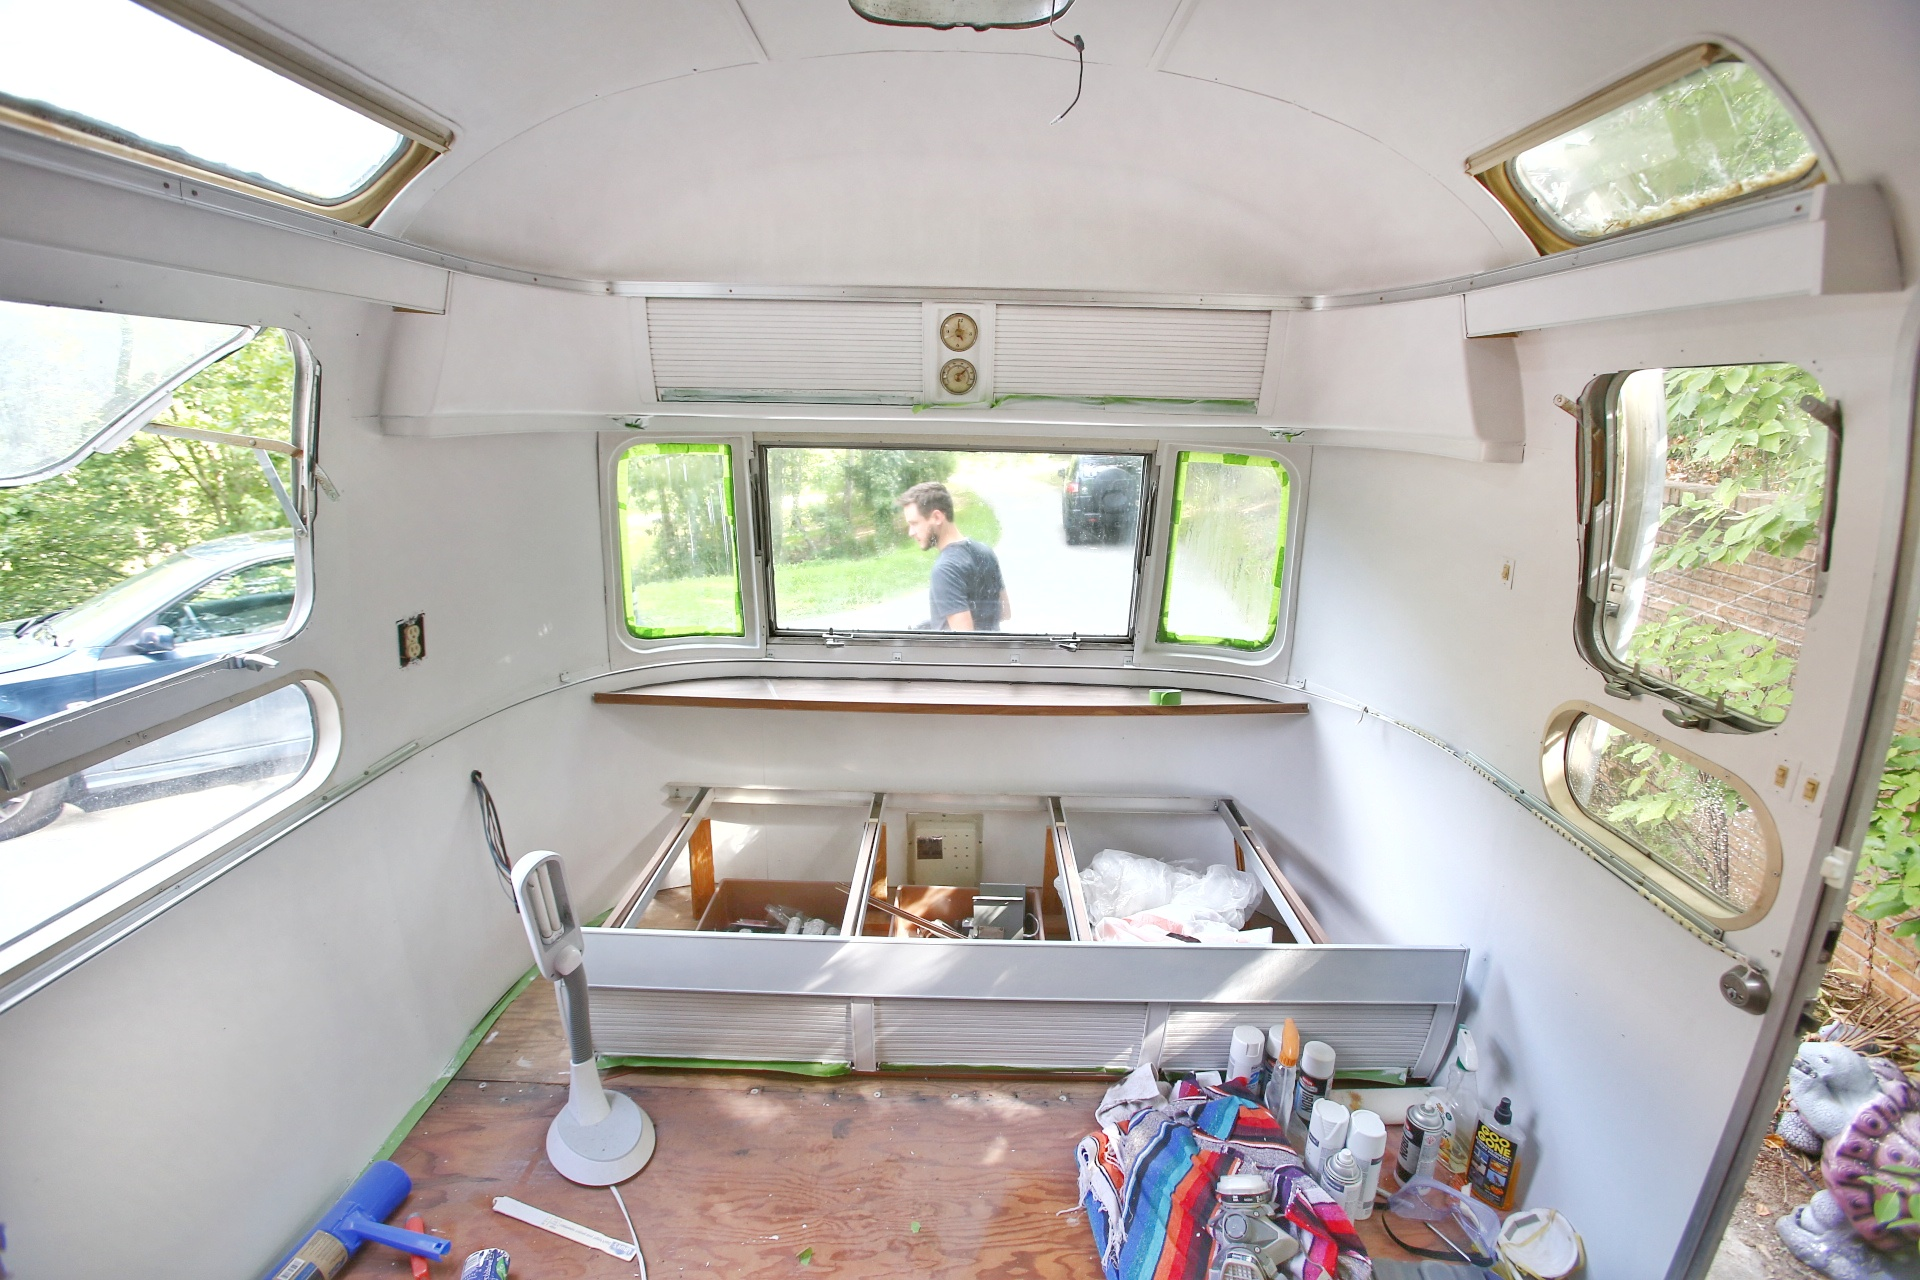 Painting the Interior of a Vintage Airstream | Mavis the